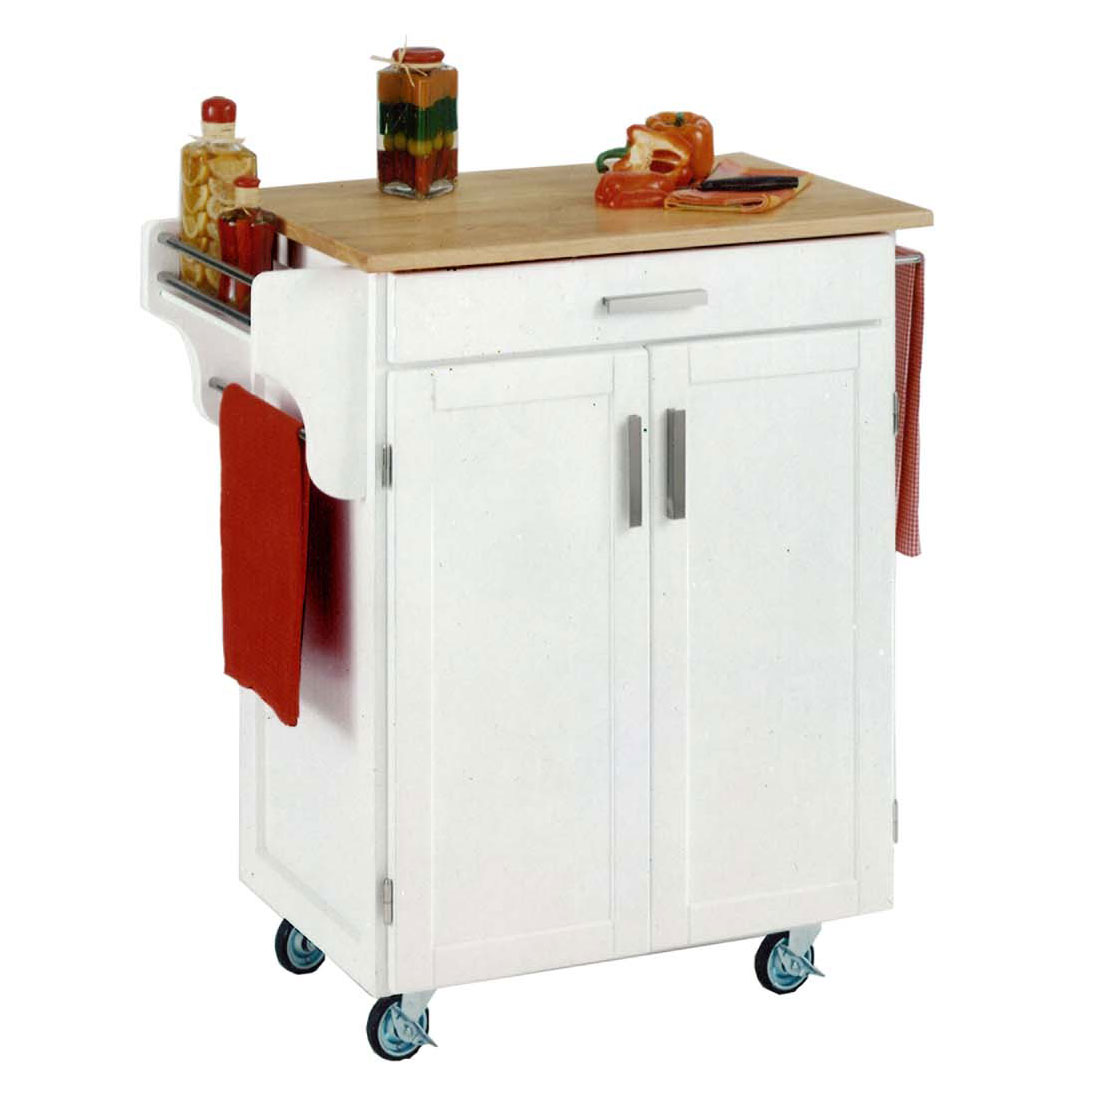 White/Natural Cuisine Kitchen Cart with Wood Top, WHITE WOOD